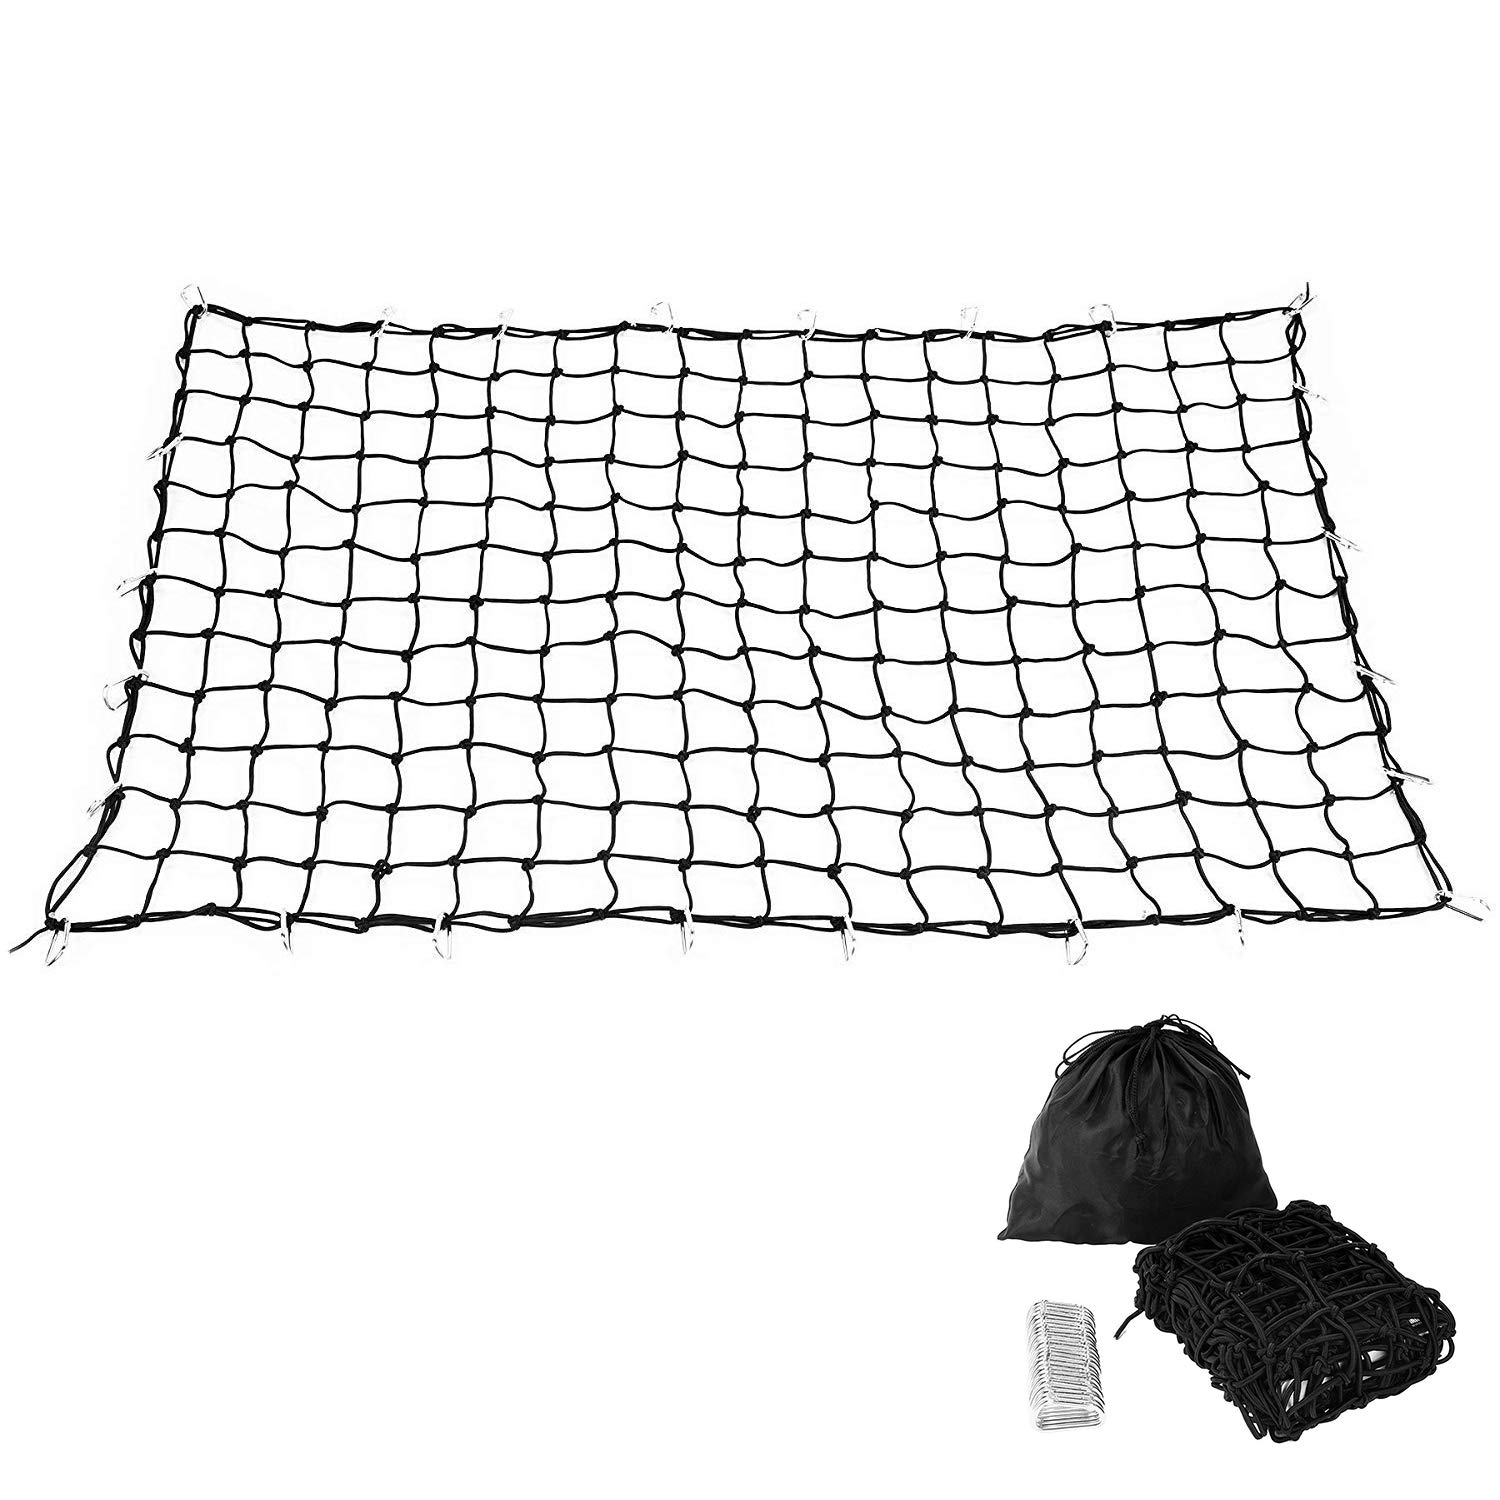 Trailer Truck Bed Cargo Net 4'x6' Stretches to 8'x12' with 24pcs Aluminium Hooks, 4'x4' Small Mesh, 1/5' Dia Thick Latex Bungee Cords